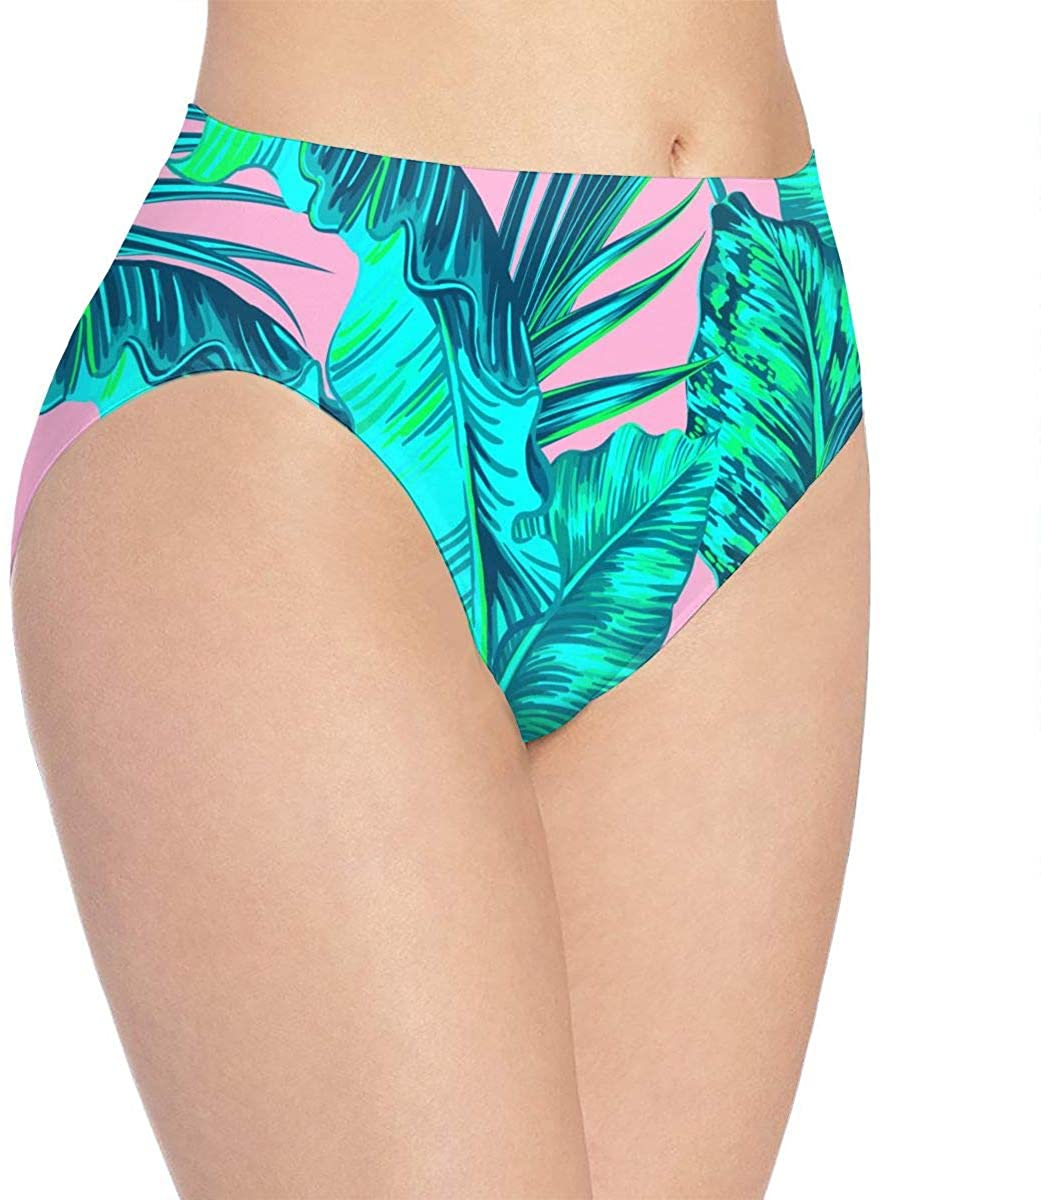 Tropical Palm Leaves Pink Jungle Leaves Womens Seamless Underwear Low Rise No Show Panties